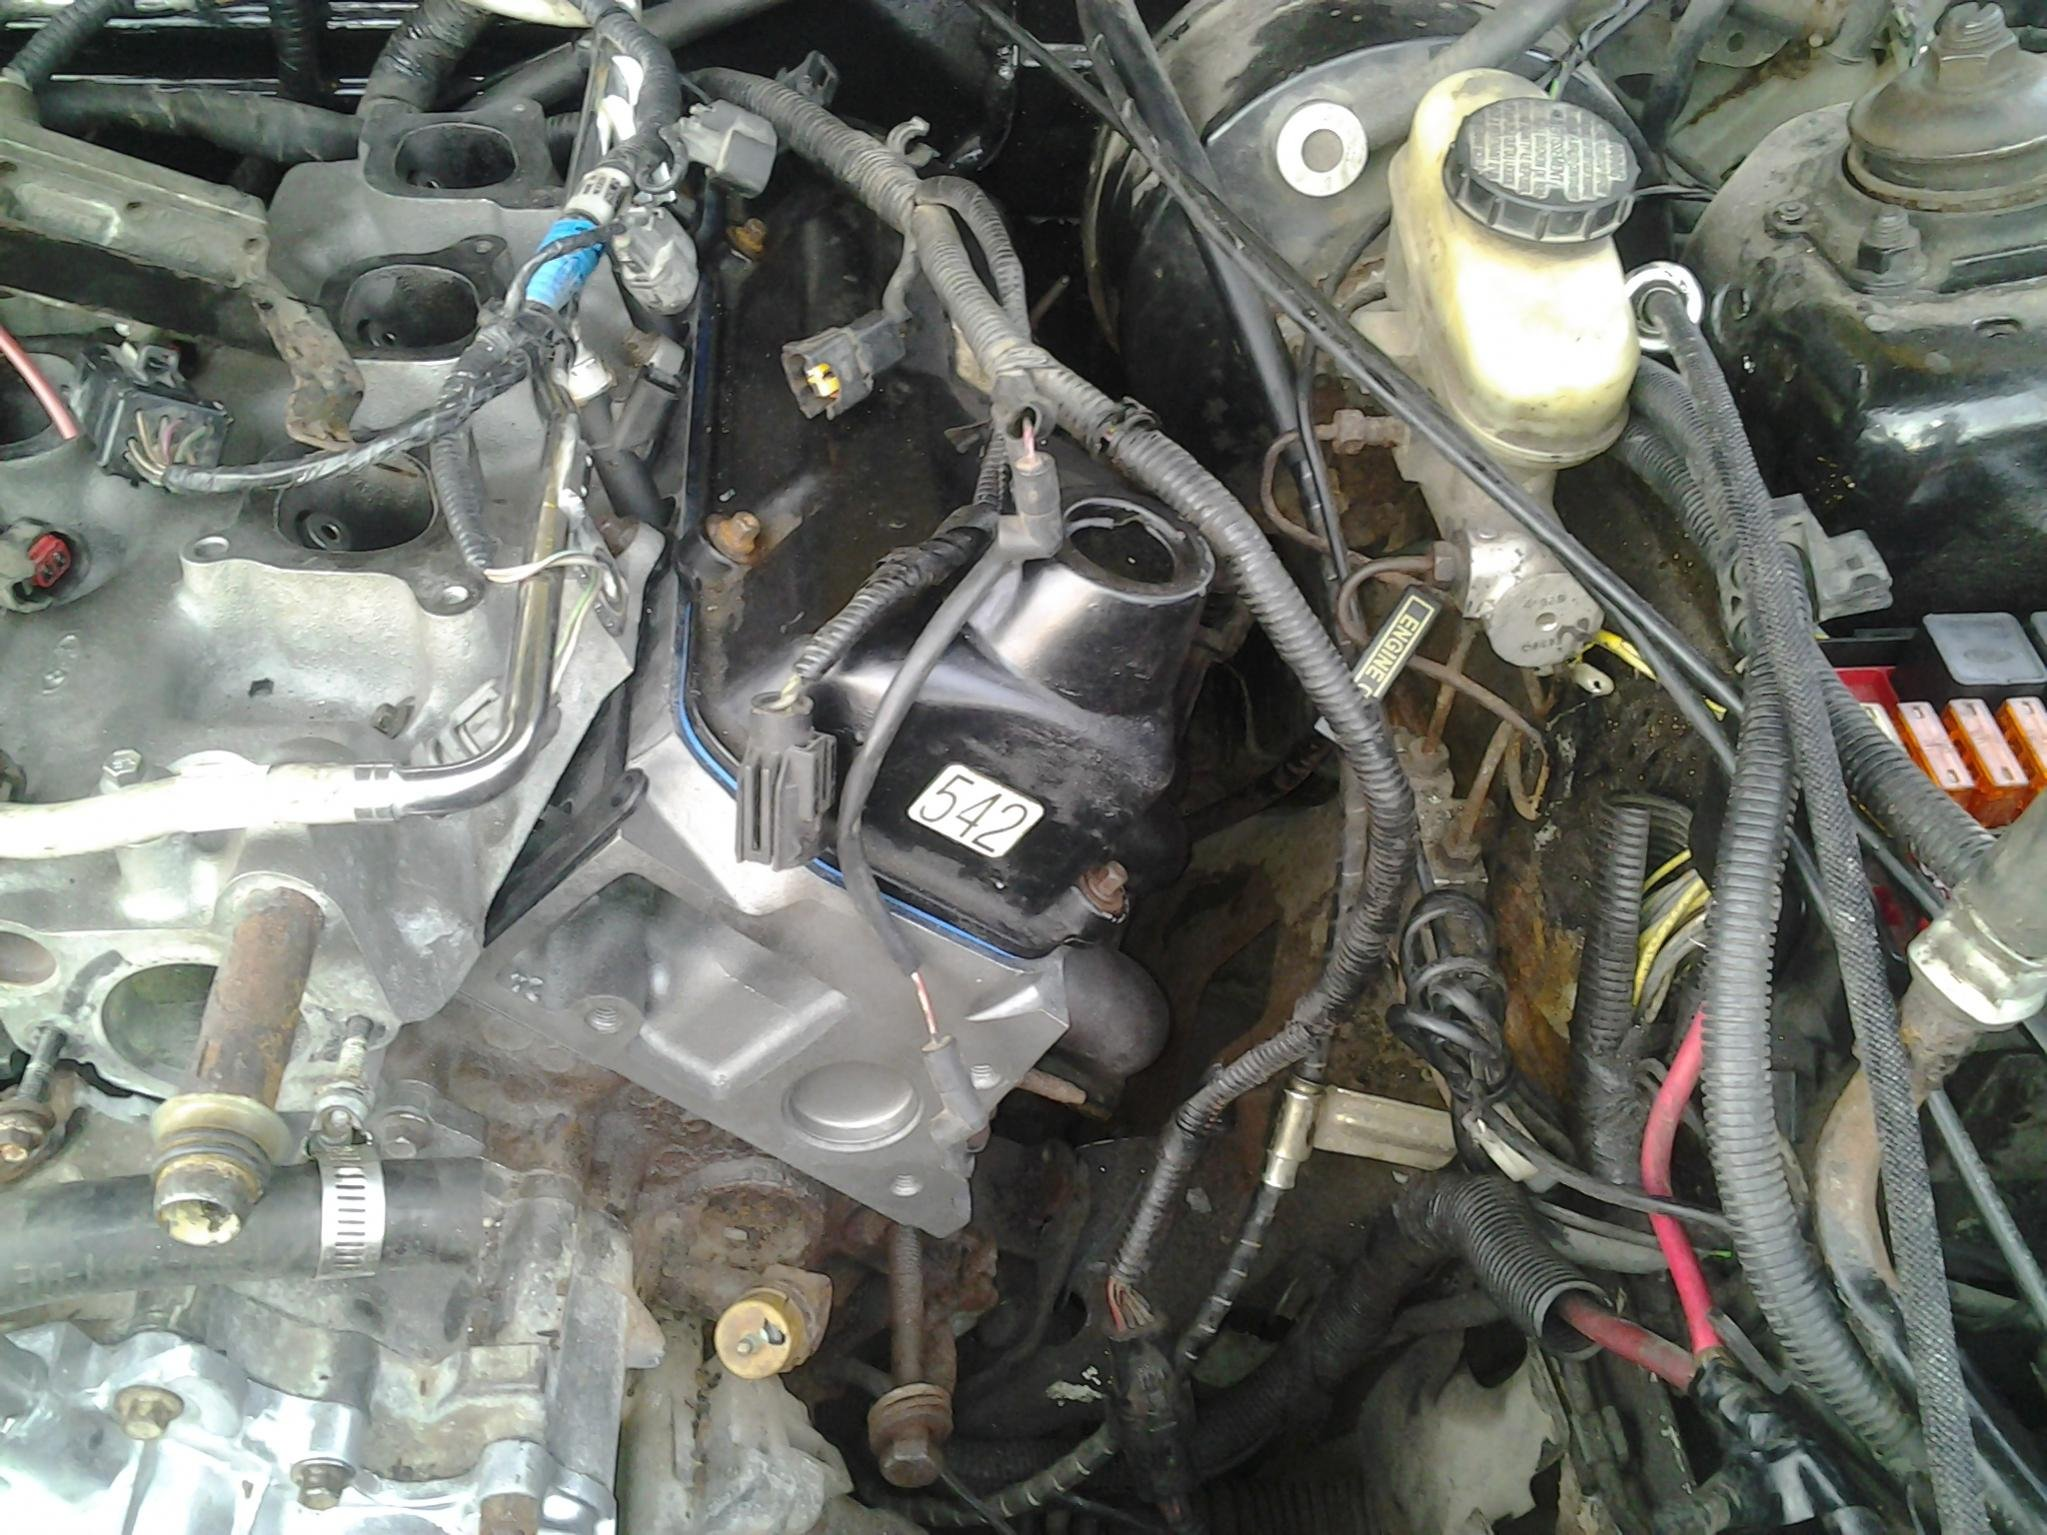 94 mustang 3.8 wiring harness locations? drove nuts!! what plugs are for what??-20120704_195734.jpg